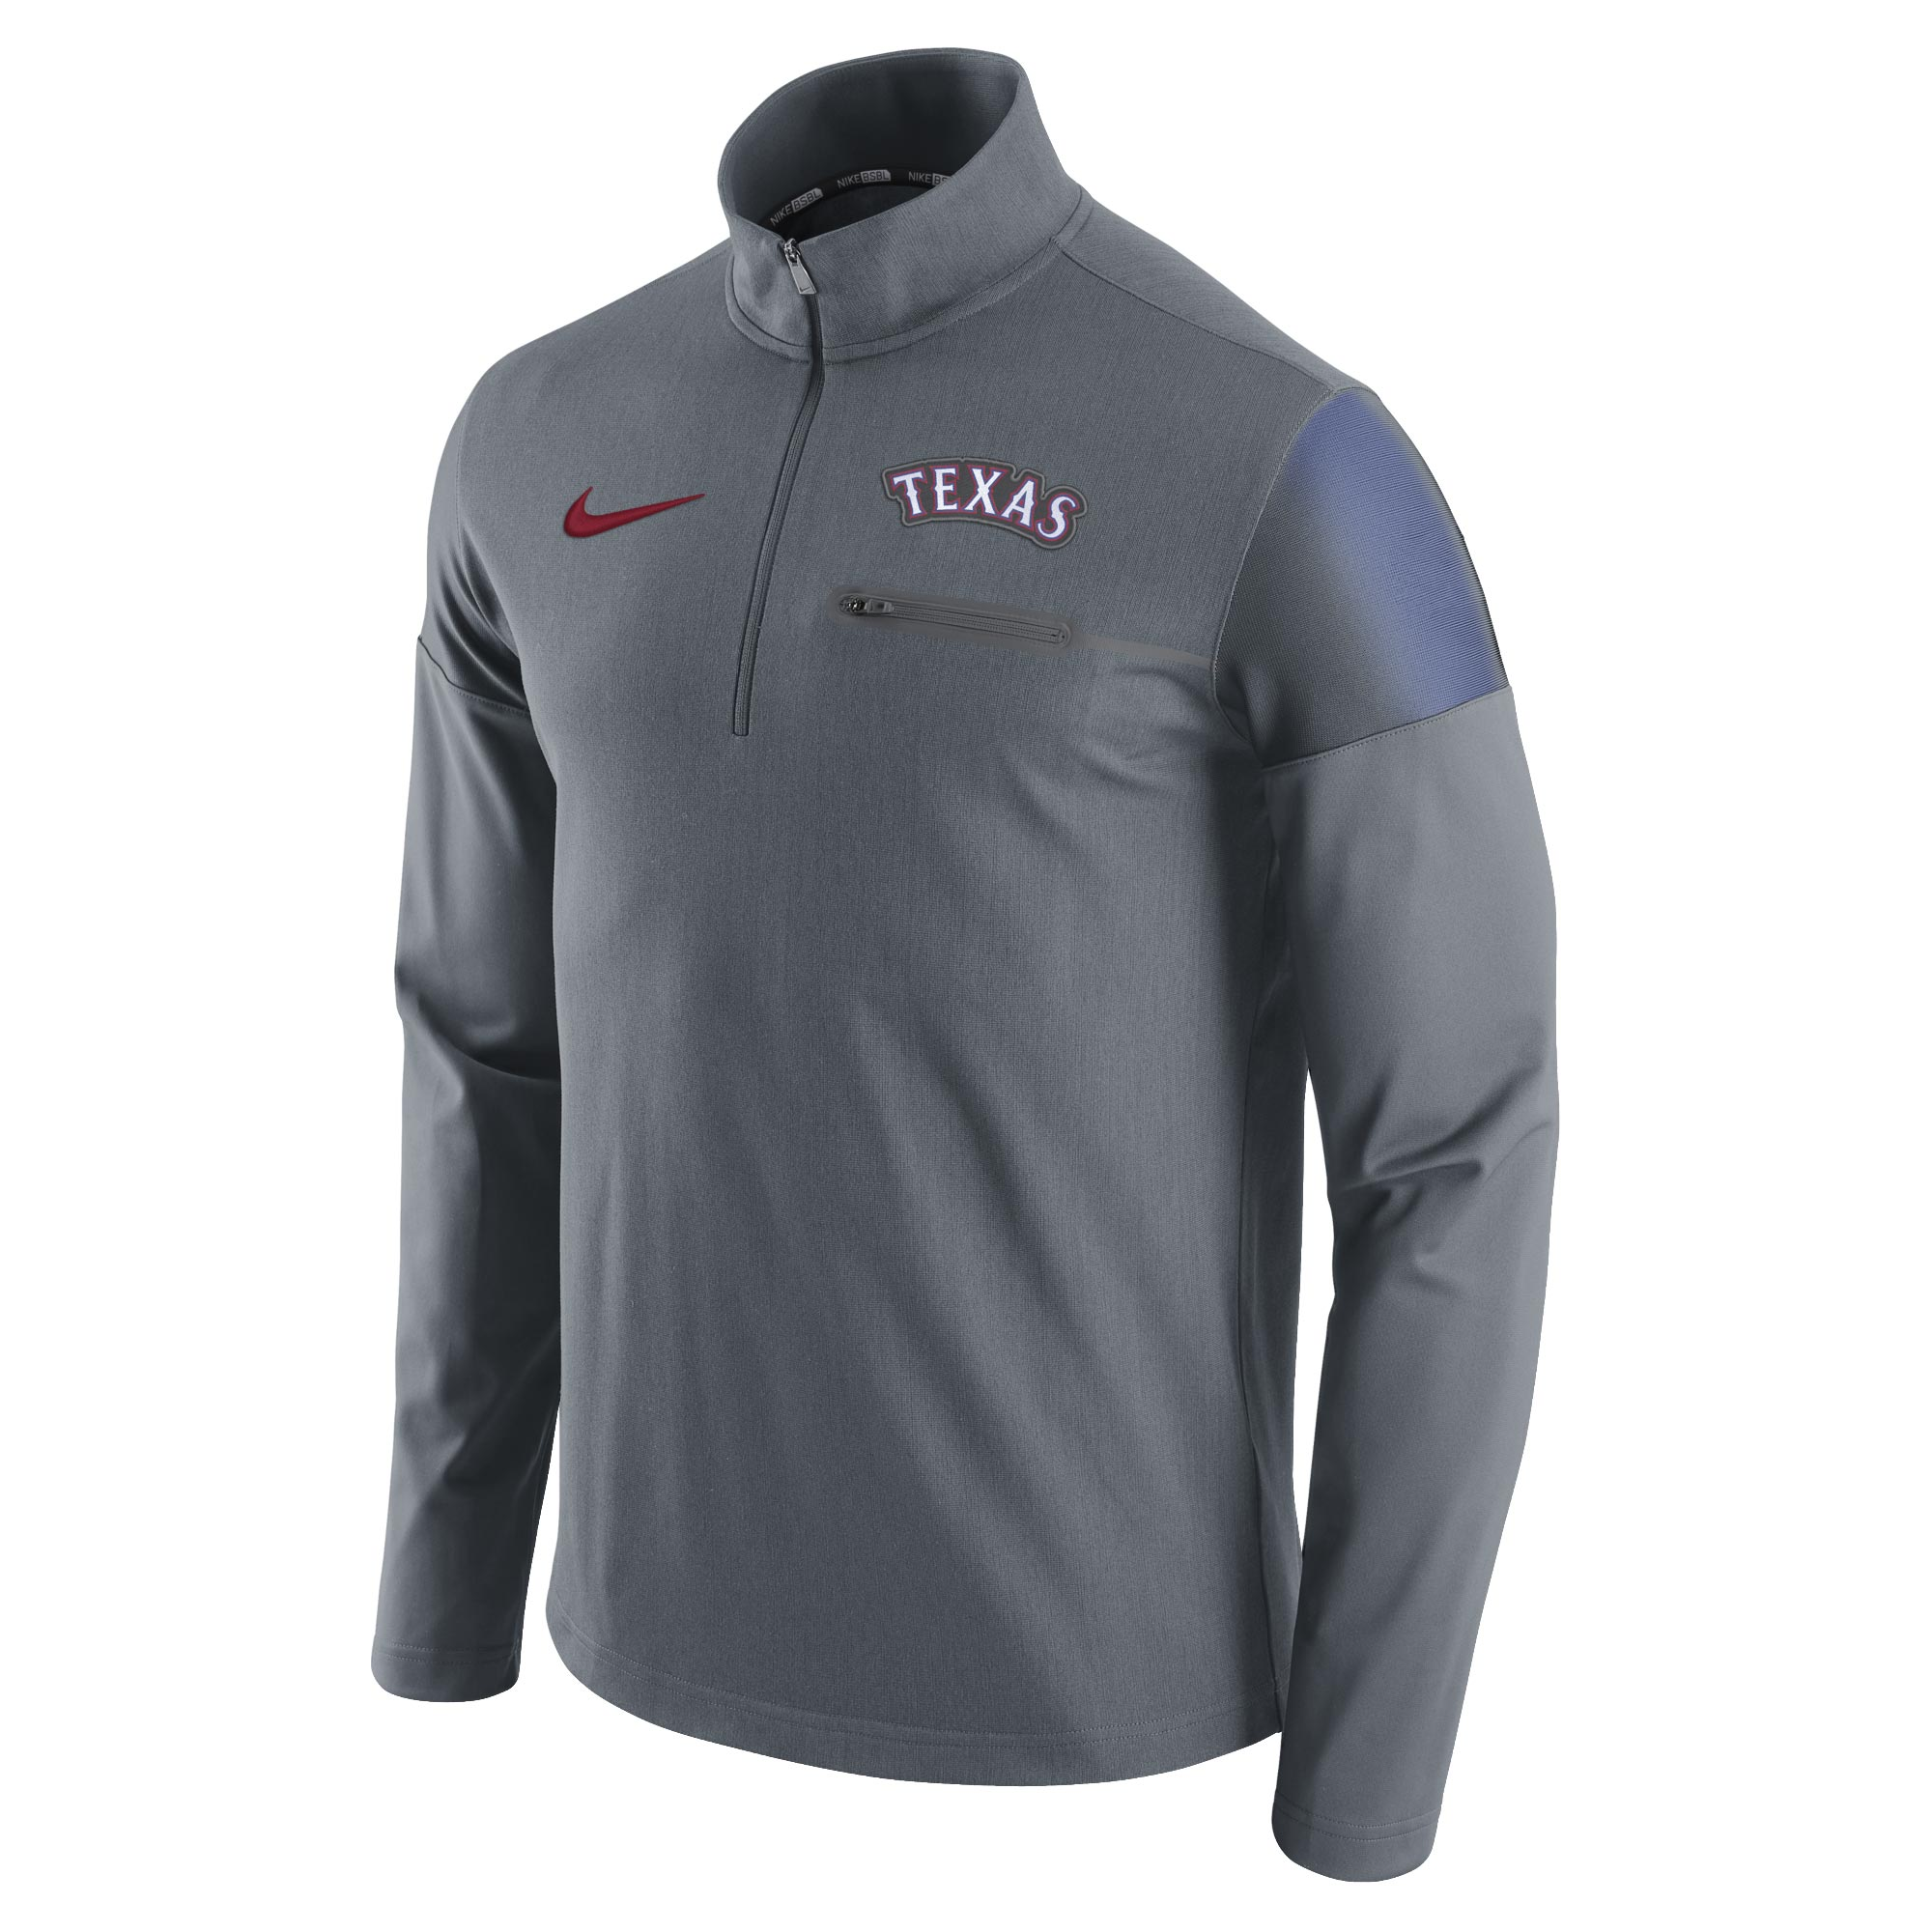 Texas Rangers Nike Elite Half-Zip Pullover Jacket - Gray